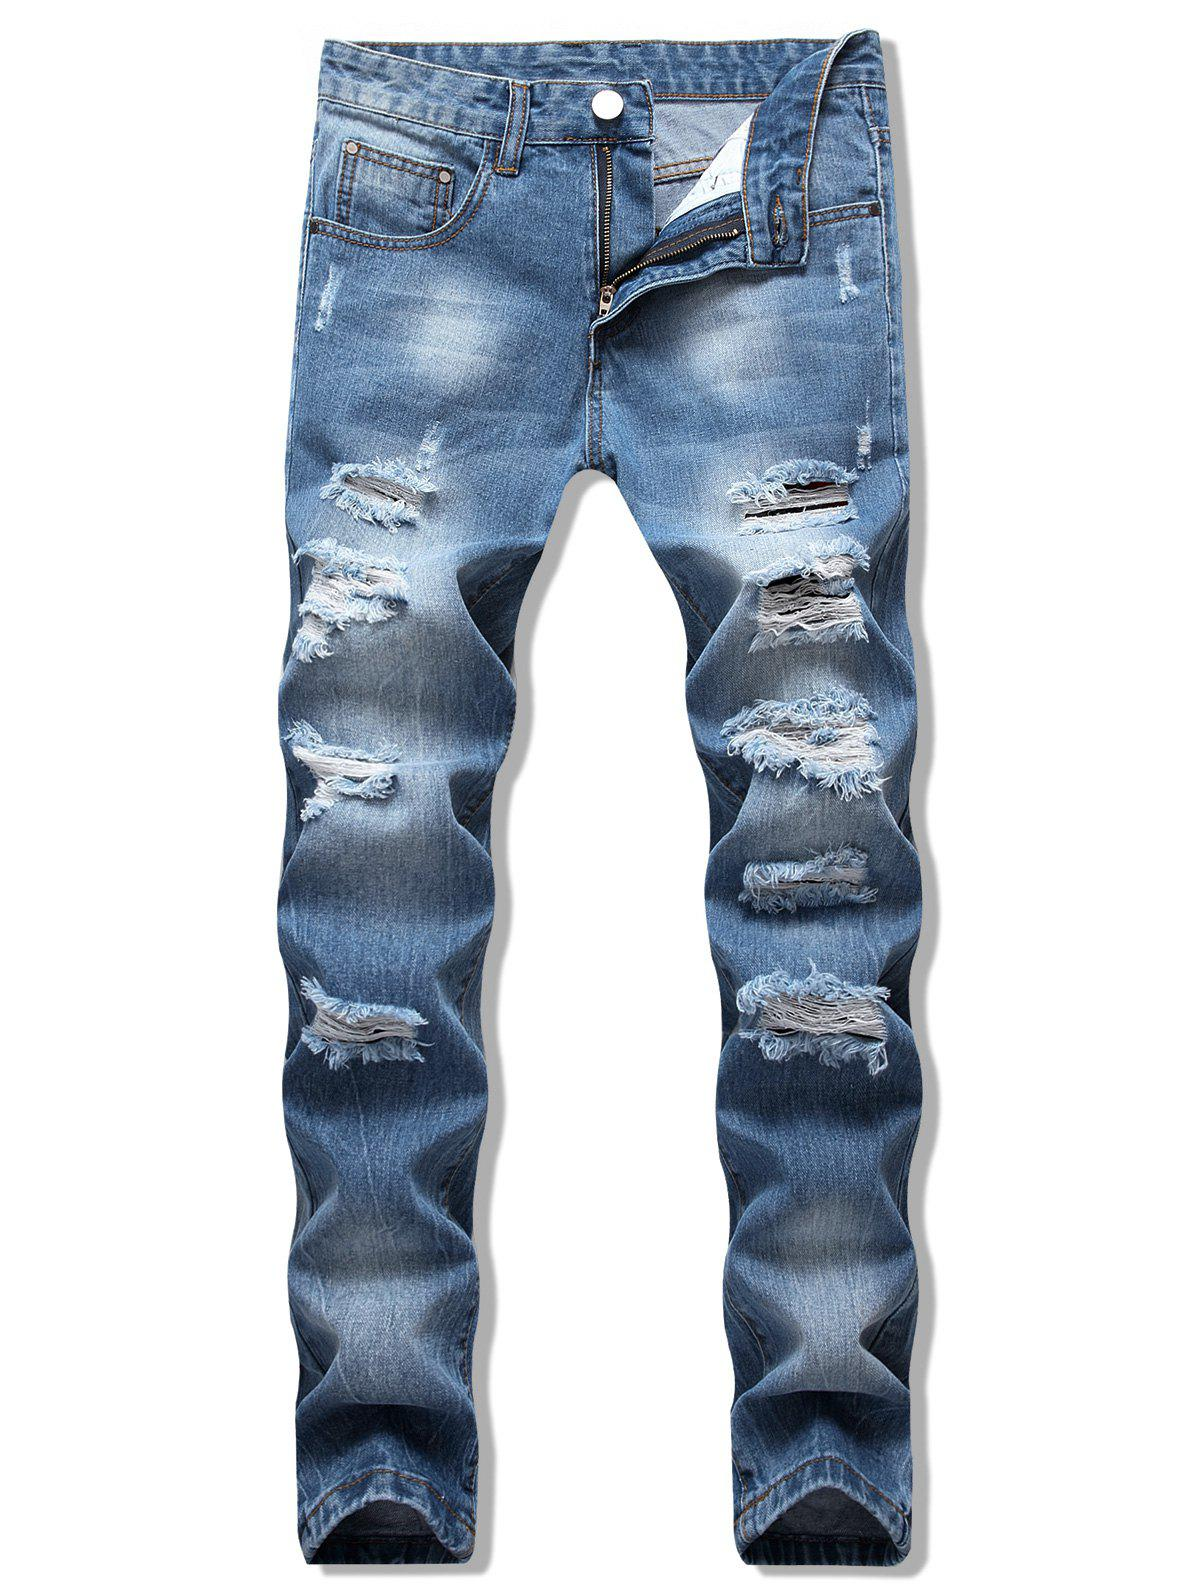 Destroy Wash Scratch Long Casual Jeans - JEANS BLUE 38